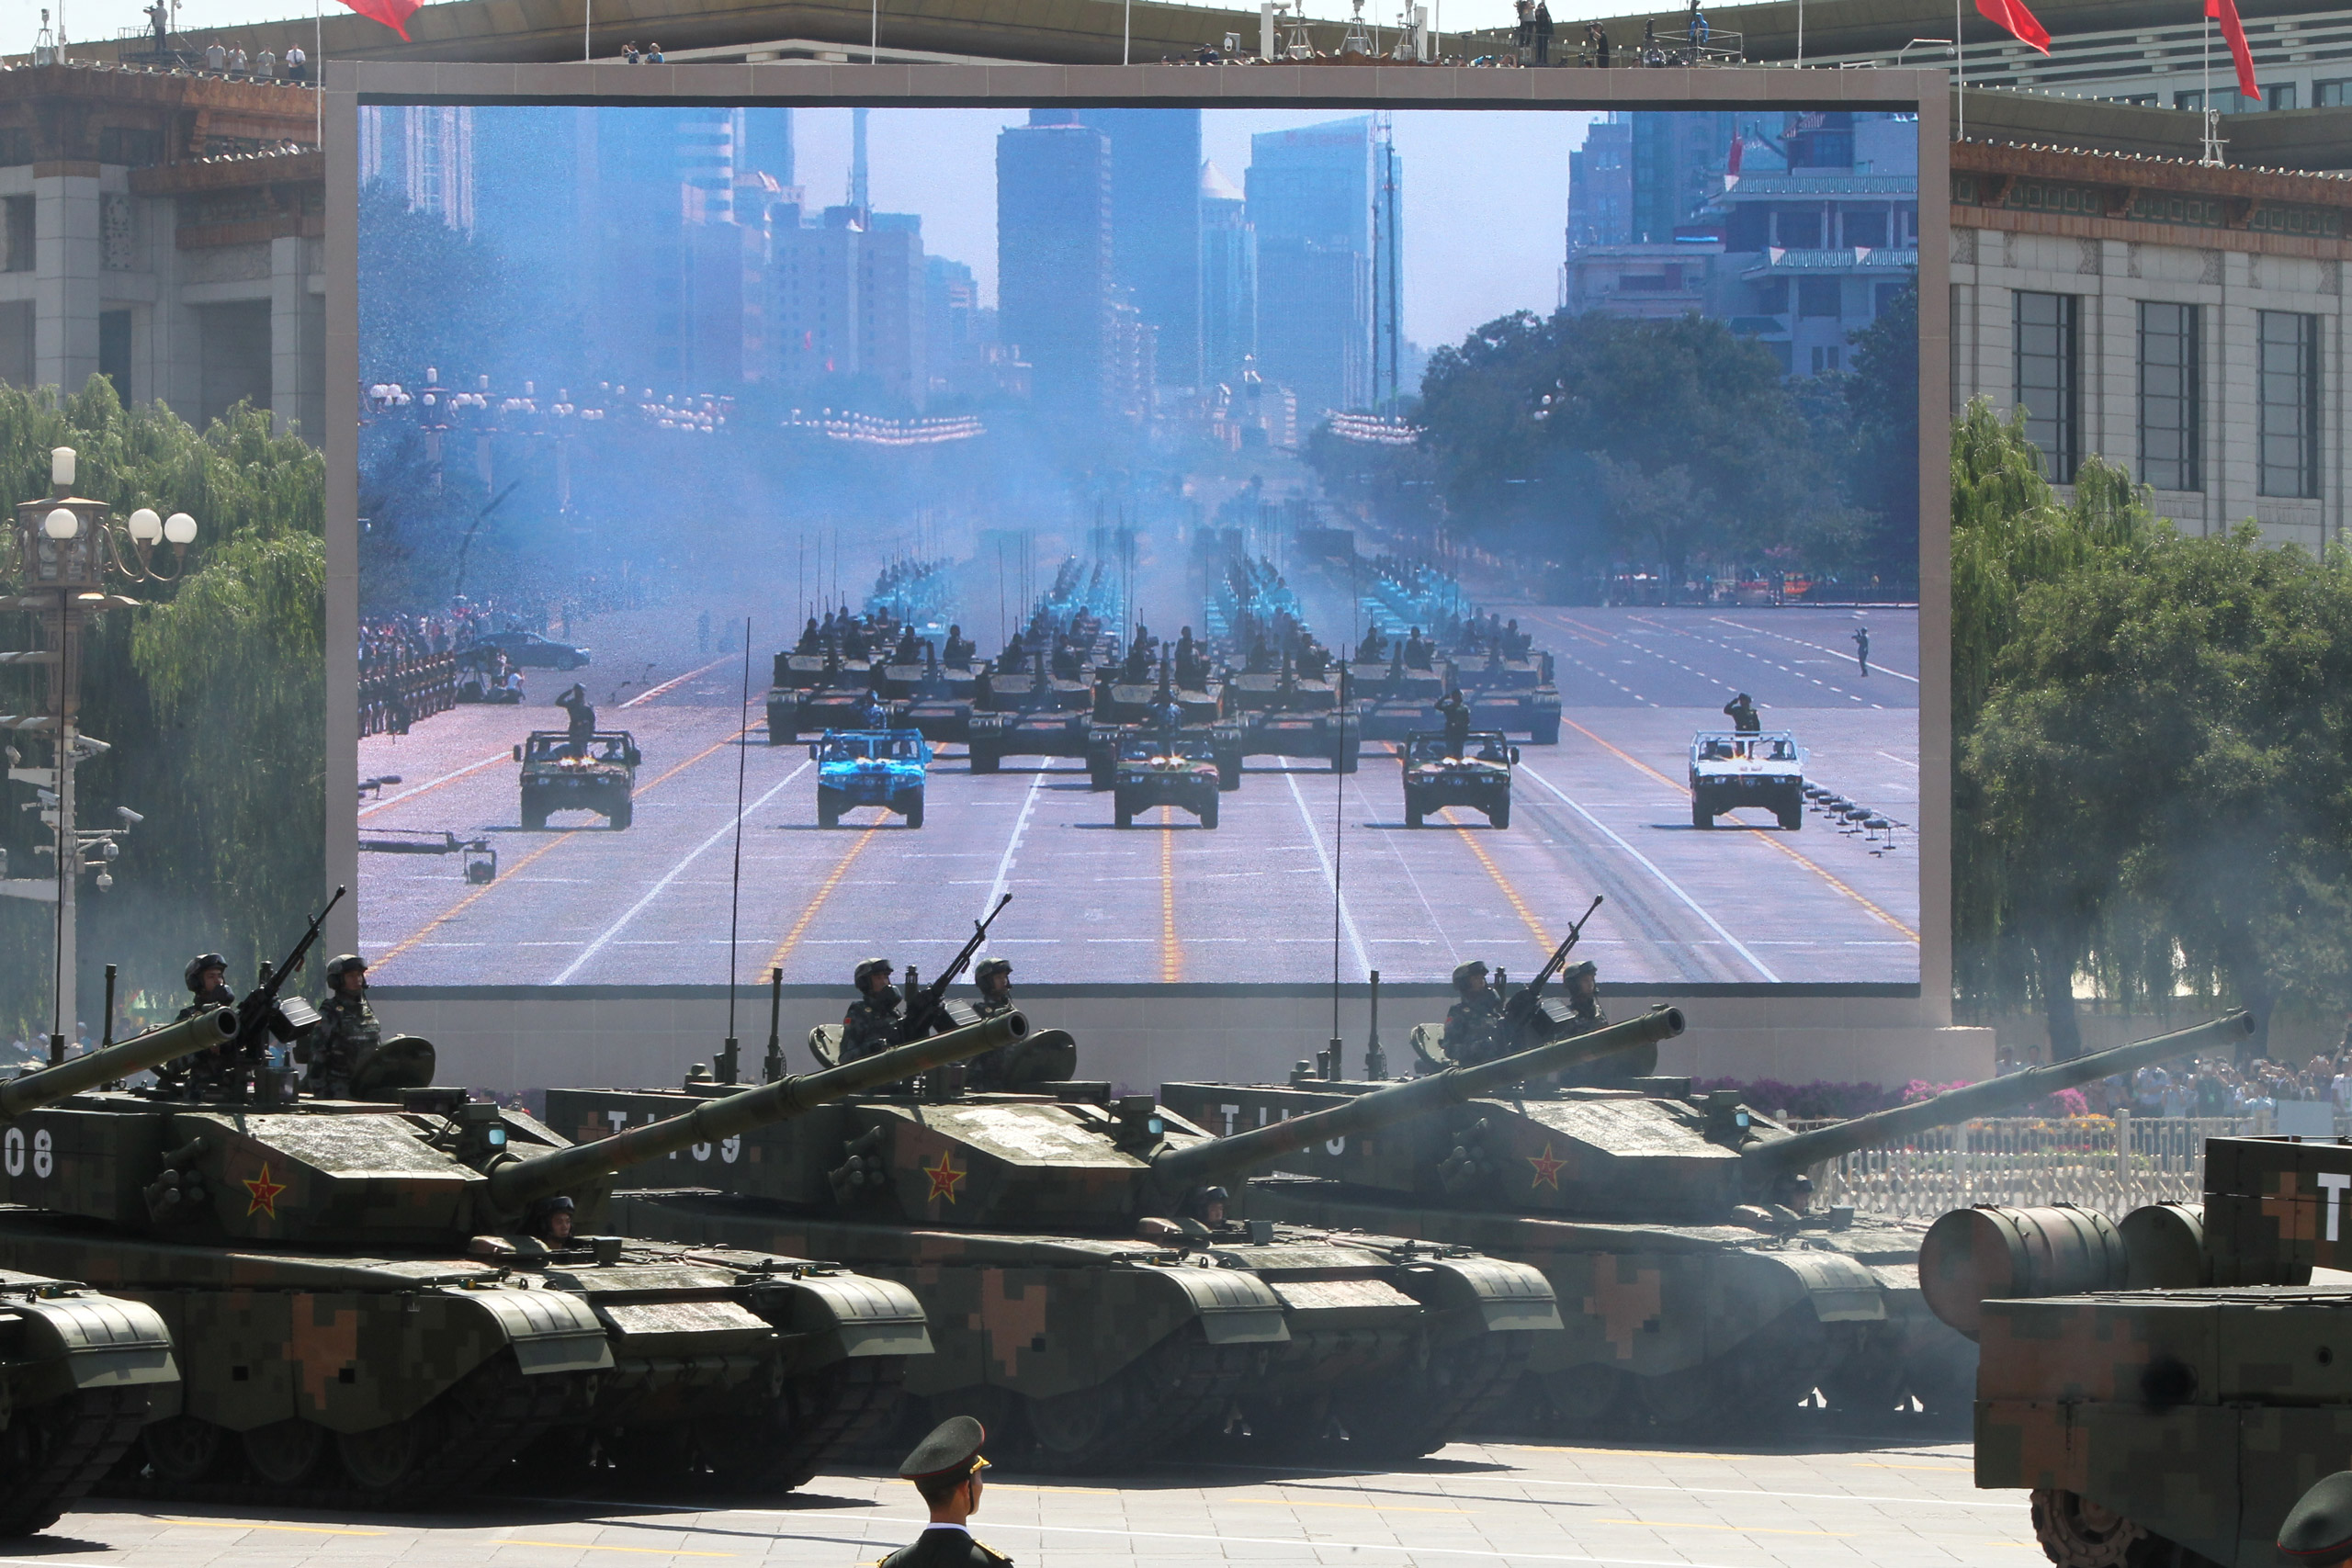 Military vehicles drive past Tiananmen Gate during the military parade marking the 70th anniversary of the end of World War II in Beijing, on Sept. 3, 2015.